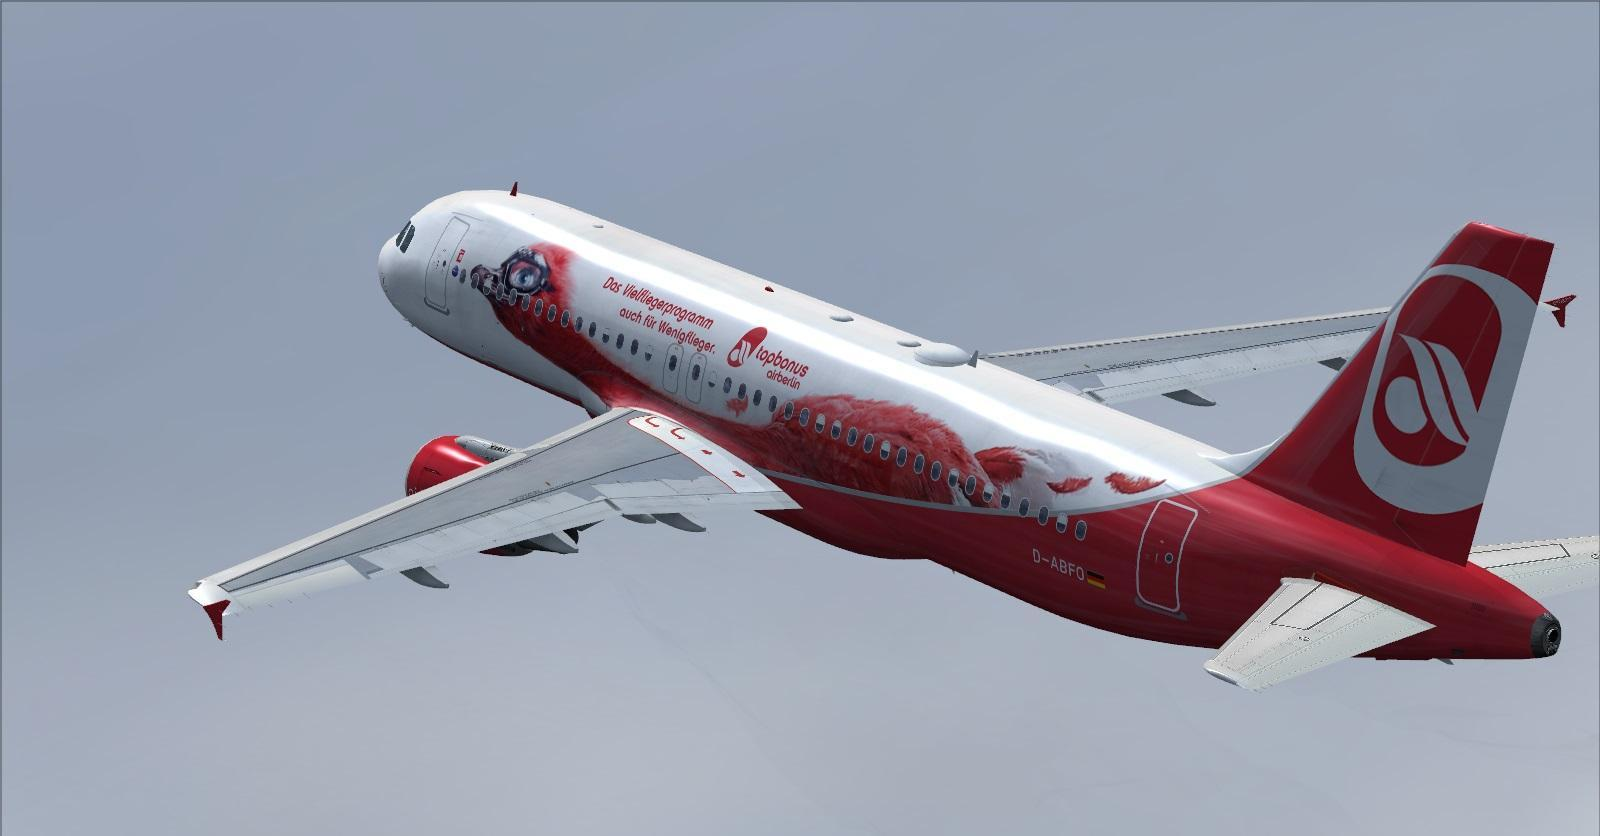 herunterladen fleet air berlin fsx p3d rikoooo. Black Bedroom Furniture Sets. Home Design Ideas